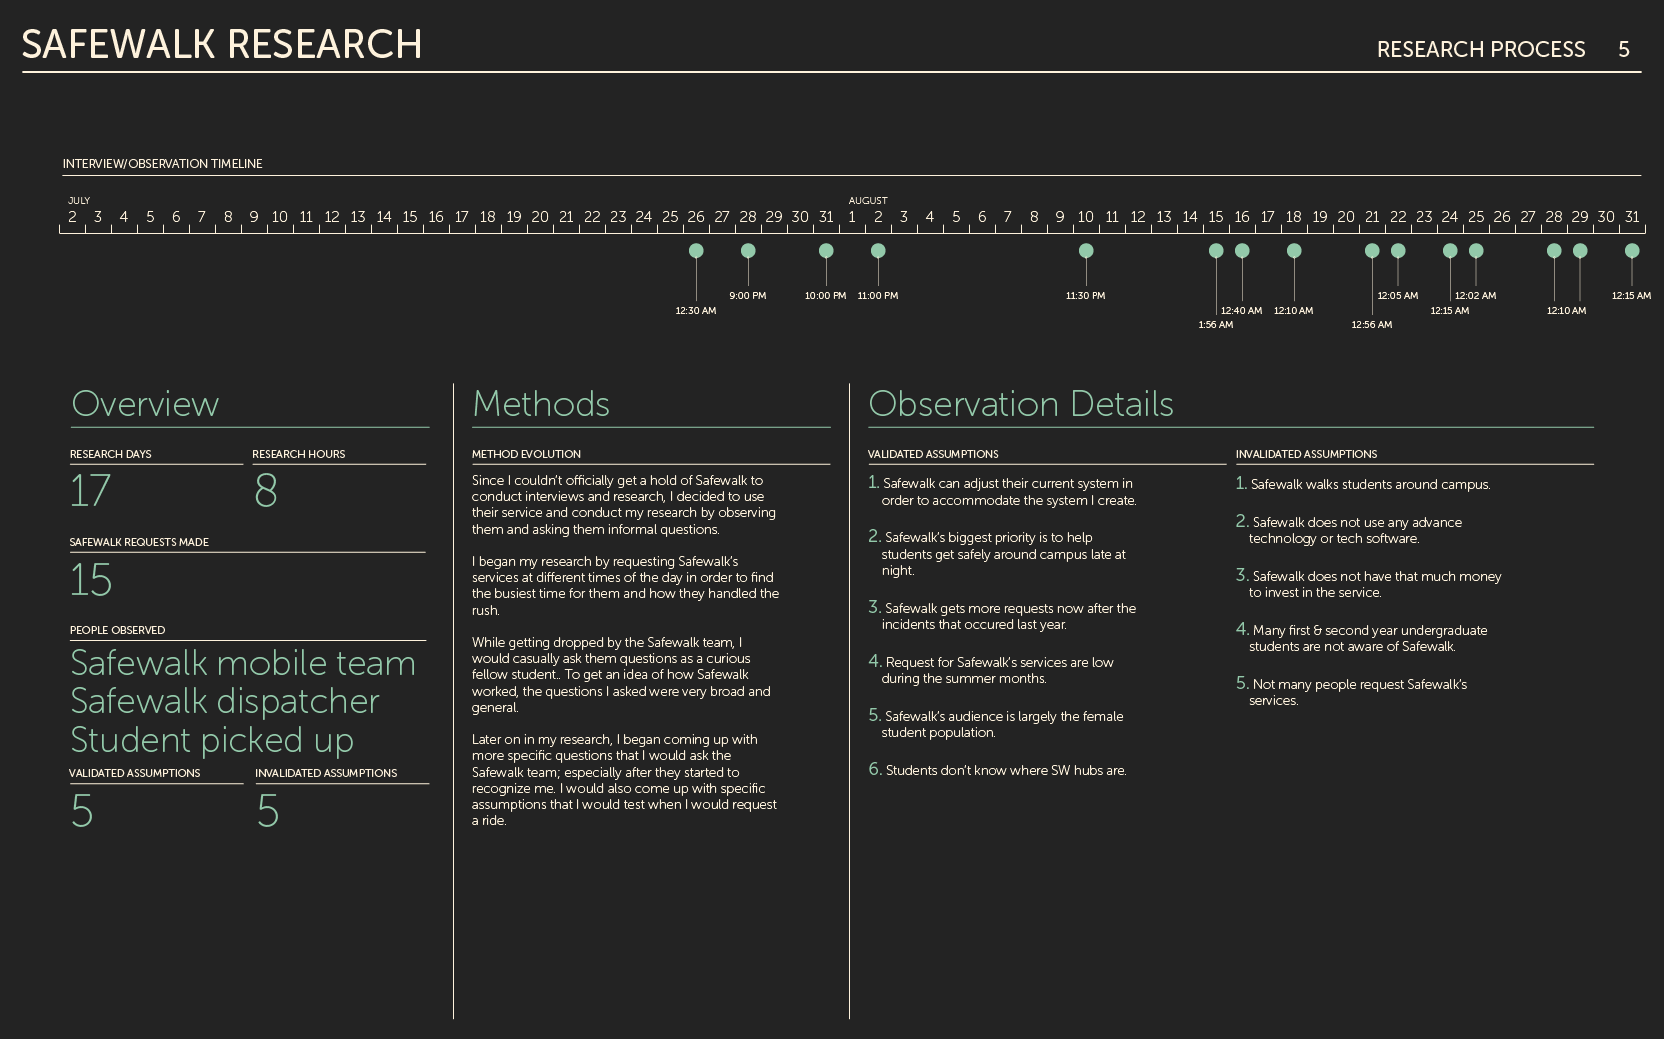 Shuttle_ResearchProcess_Title-05.png